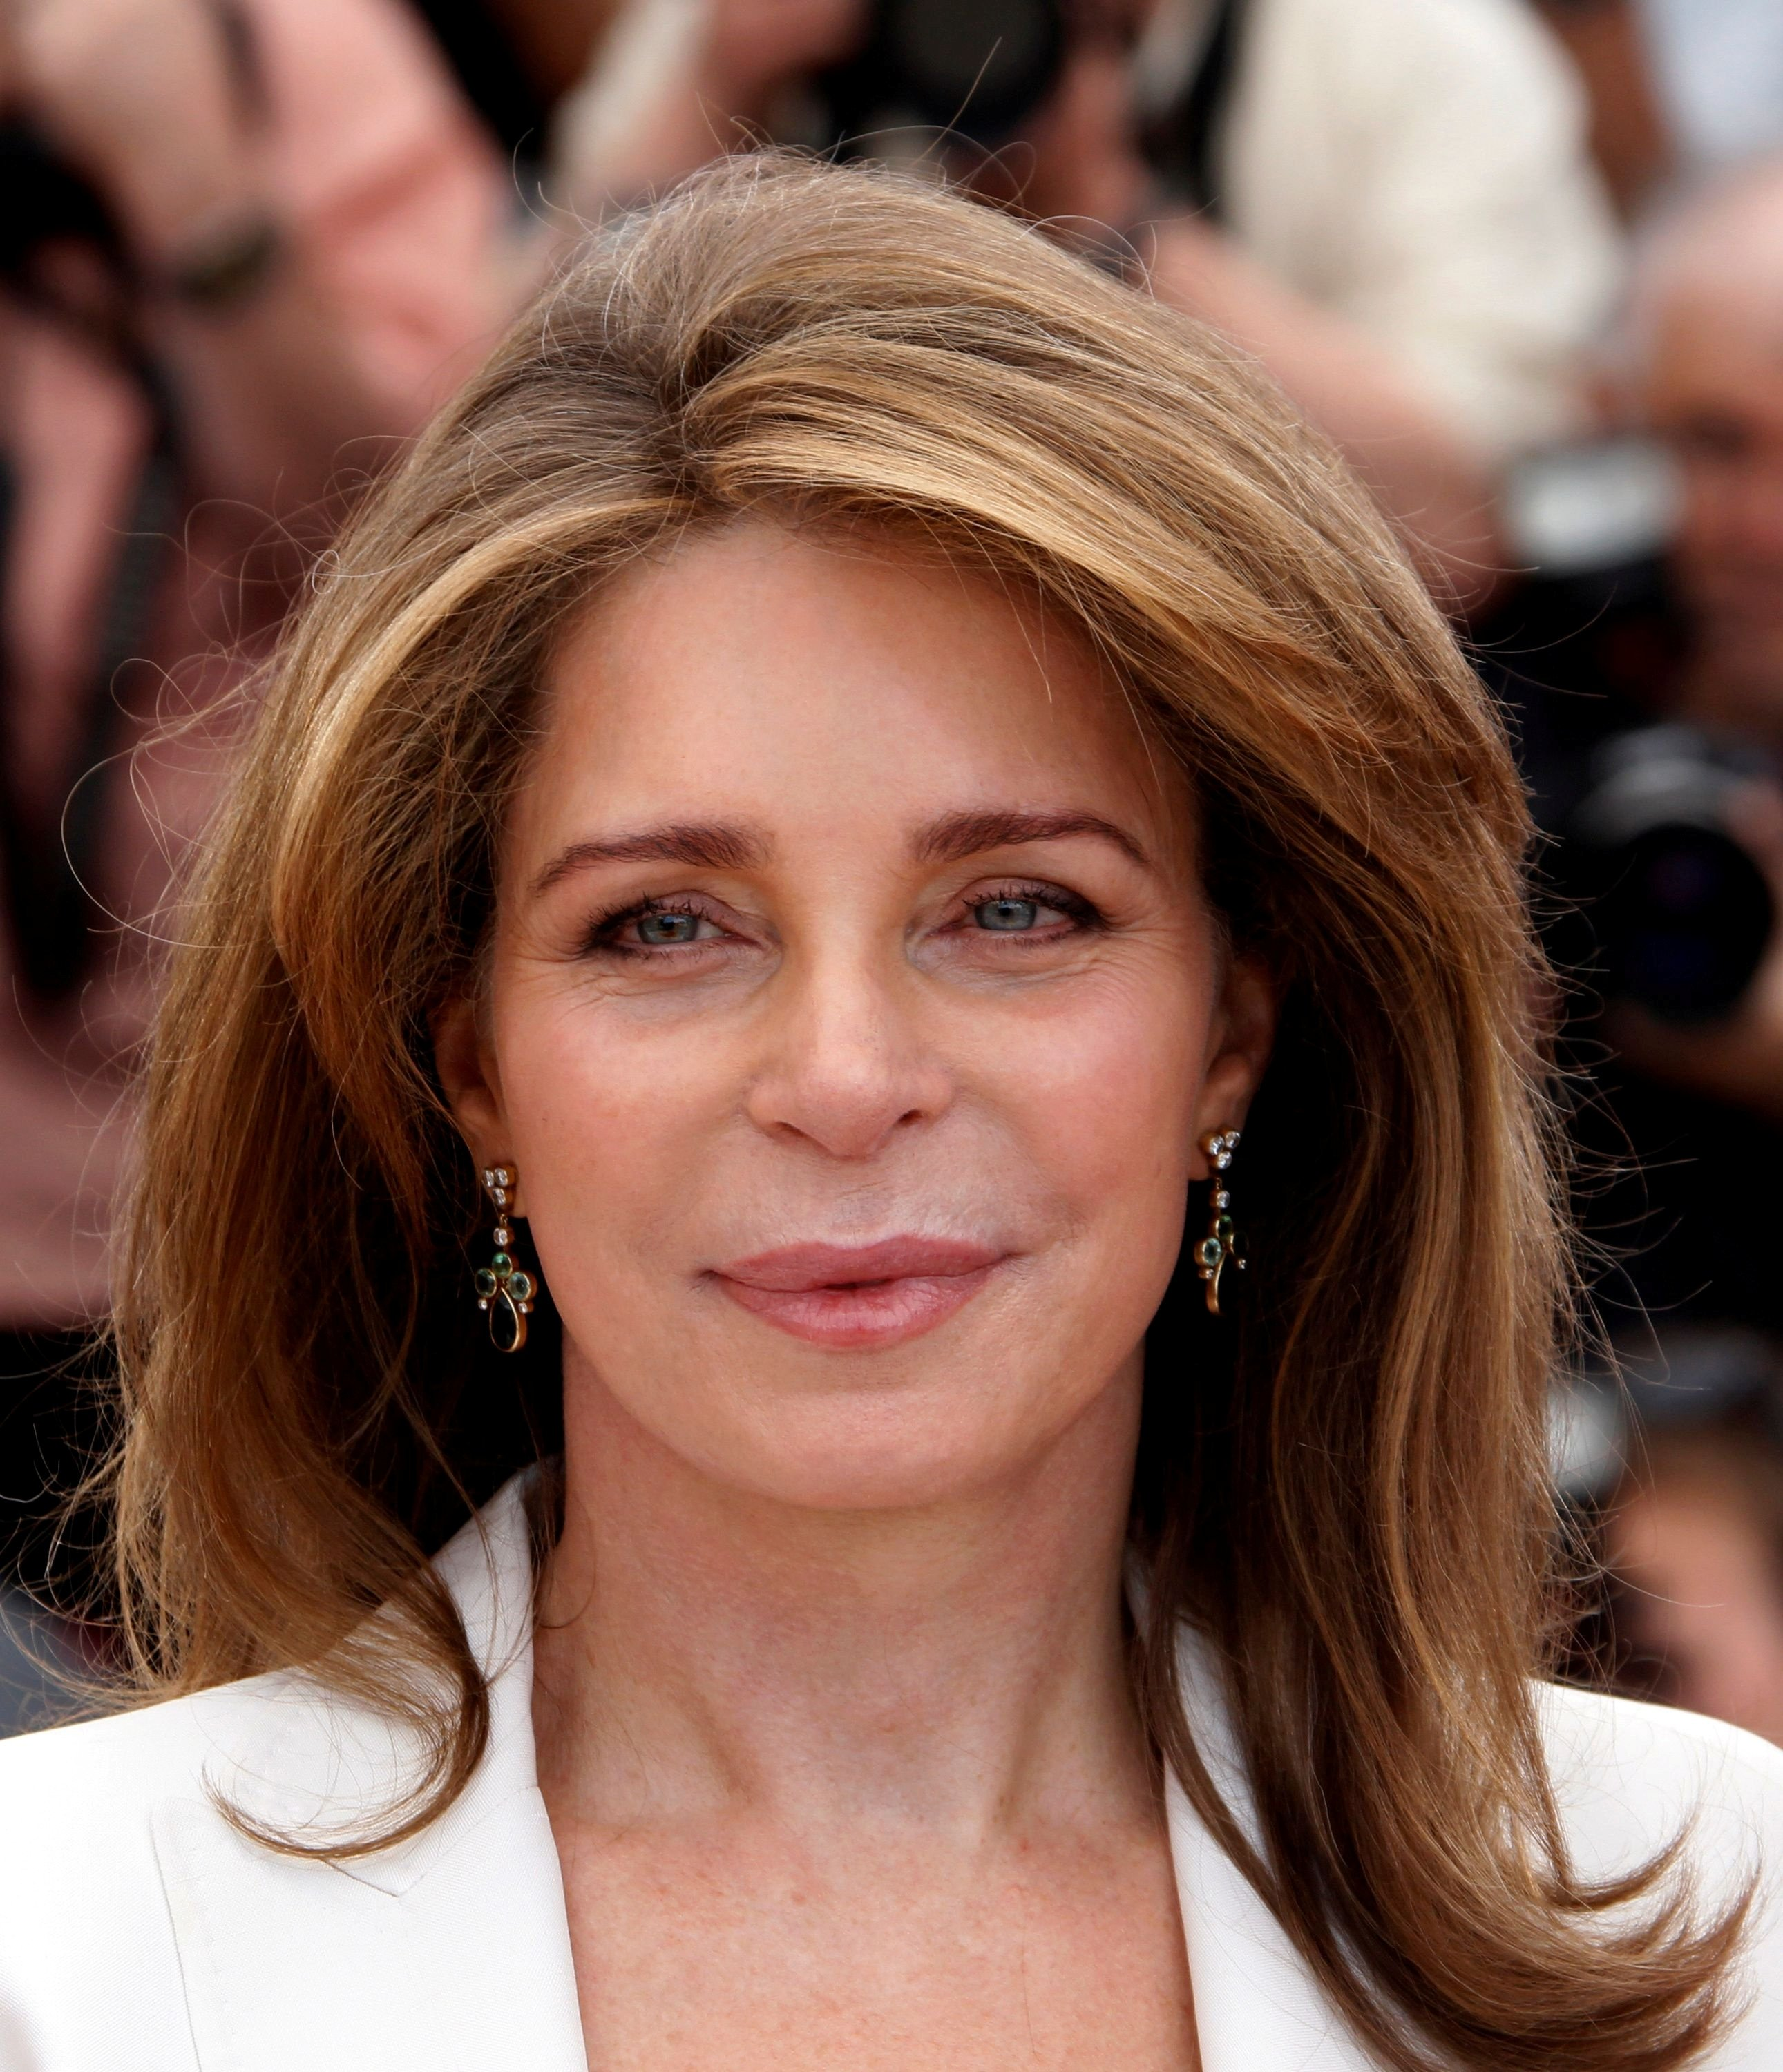 Queen Noor Al Hussein of Jordan poses during a photocall for the film 'Countdown to Zero' at the 63rd Cannes Film Festival, Cannes, France, May 16, 2010.   (REUTERS/Jean-Paul Pelissier/File Photo)